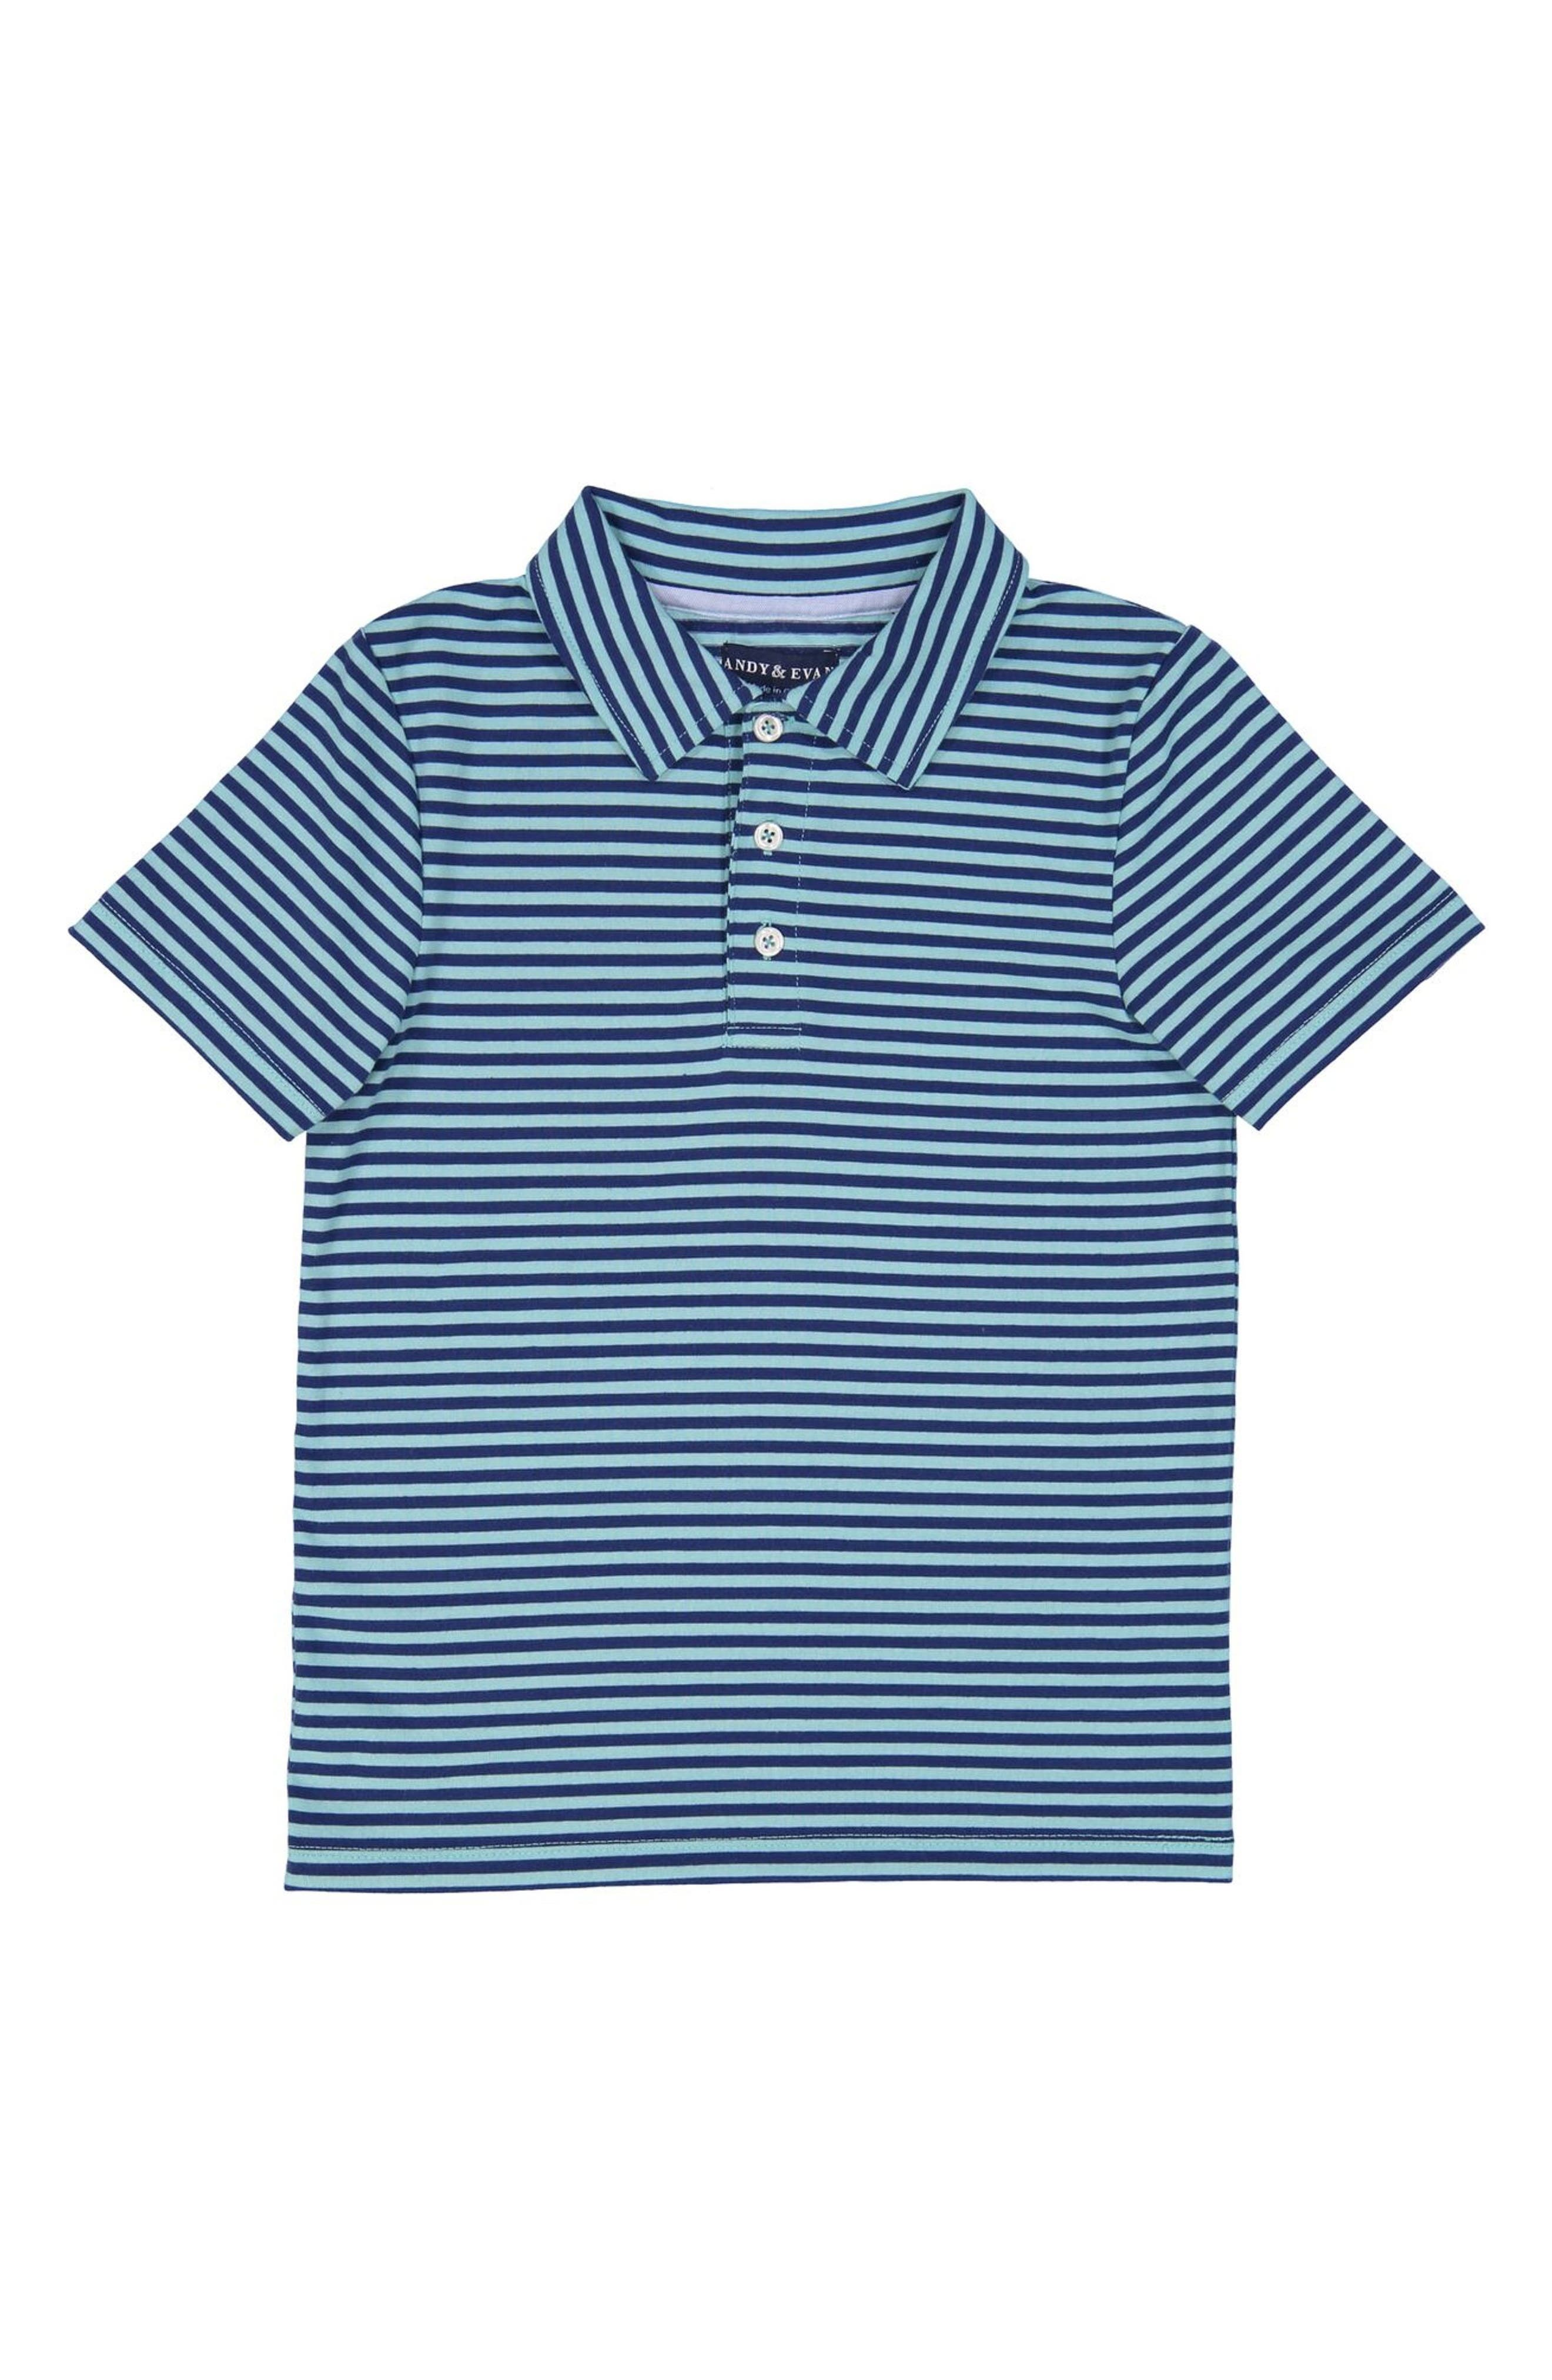 ANDY & EVAN Stripe Athletic Polo, Main, color, 443